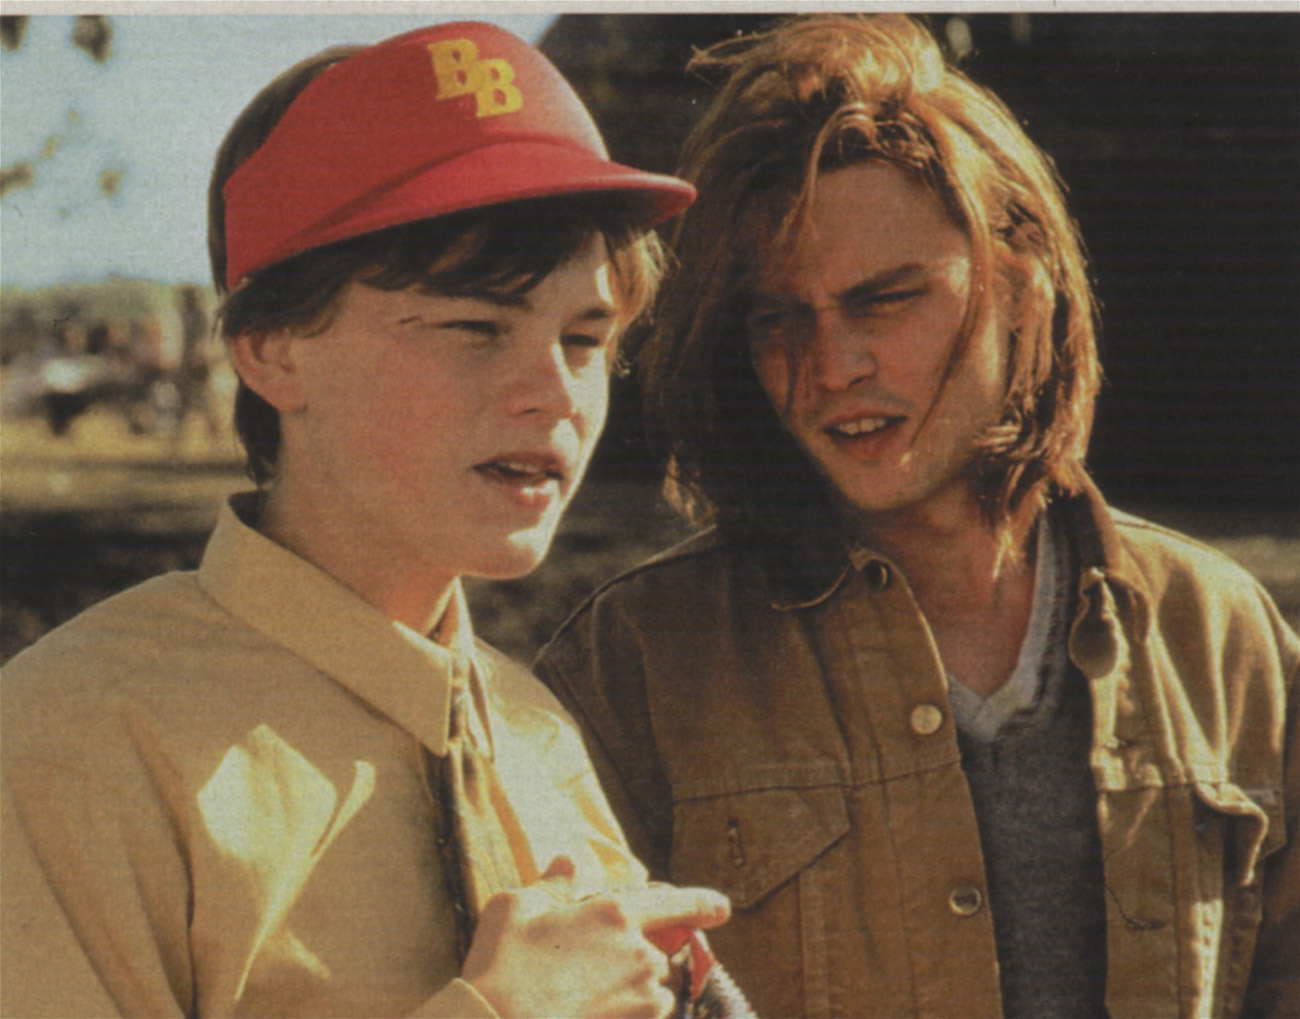 what s eating gilbert grape Darlene cates, who played the morbidly obese housebound mother in the acclaimed 1993 film what's eating gilbert grape, died on sunday at her home in forney, tex she was 69 david morgan, her son-in-law, said she died in her sleep he did not specify the cause ms cates had.